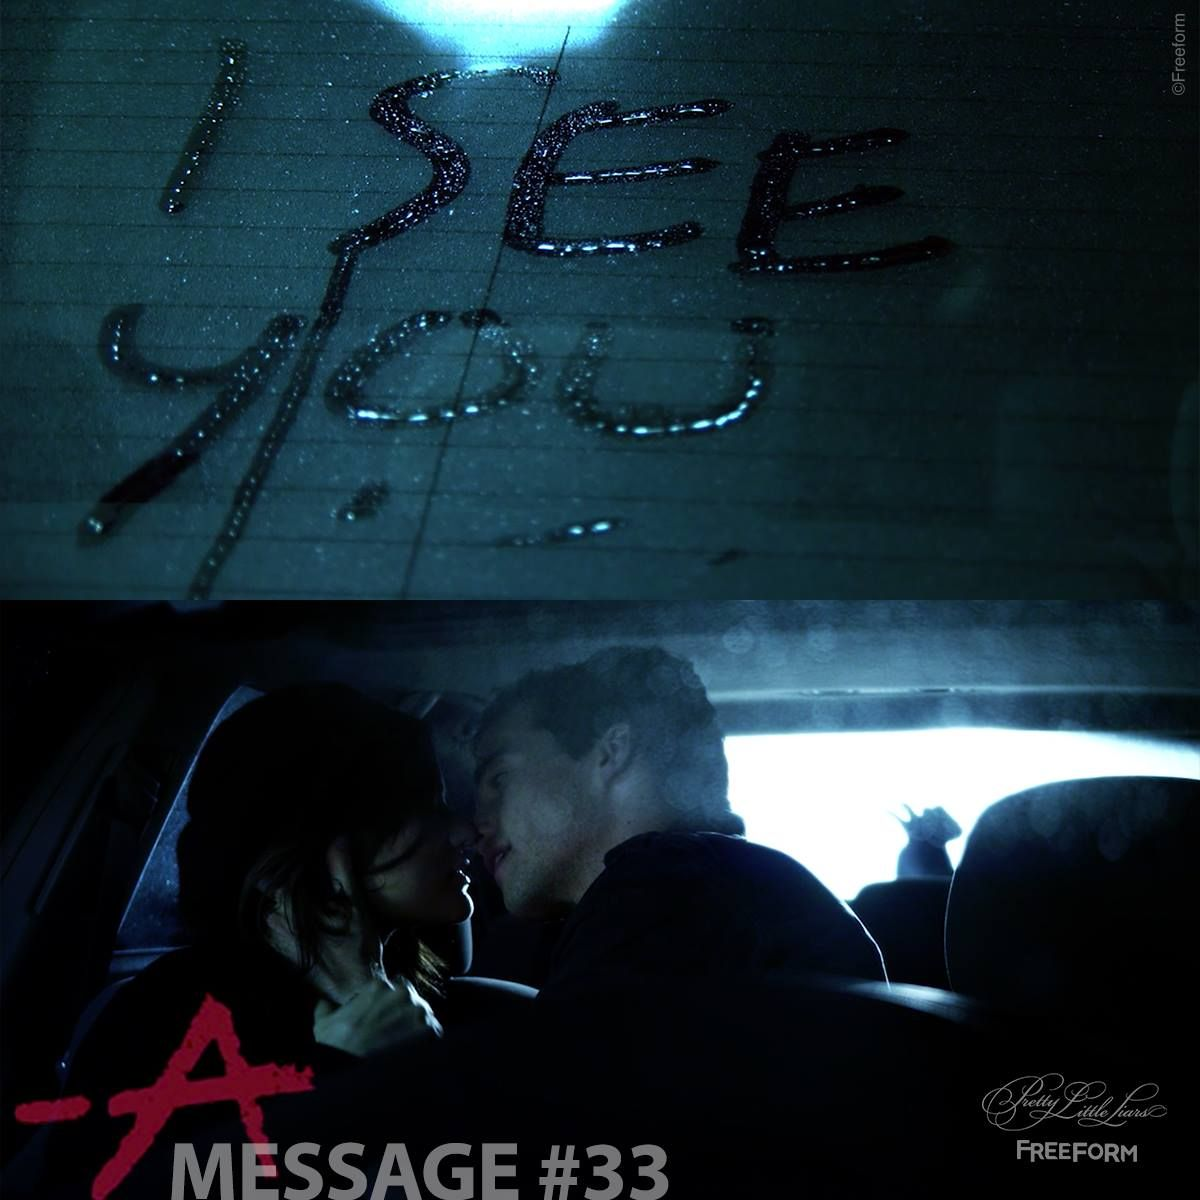 Message #33 from A  Sent to the Aria and Ezra  Ezra's car at